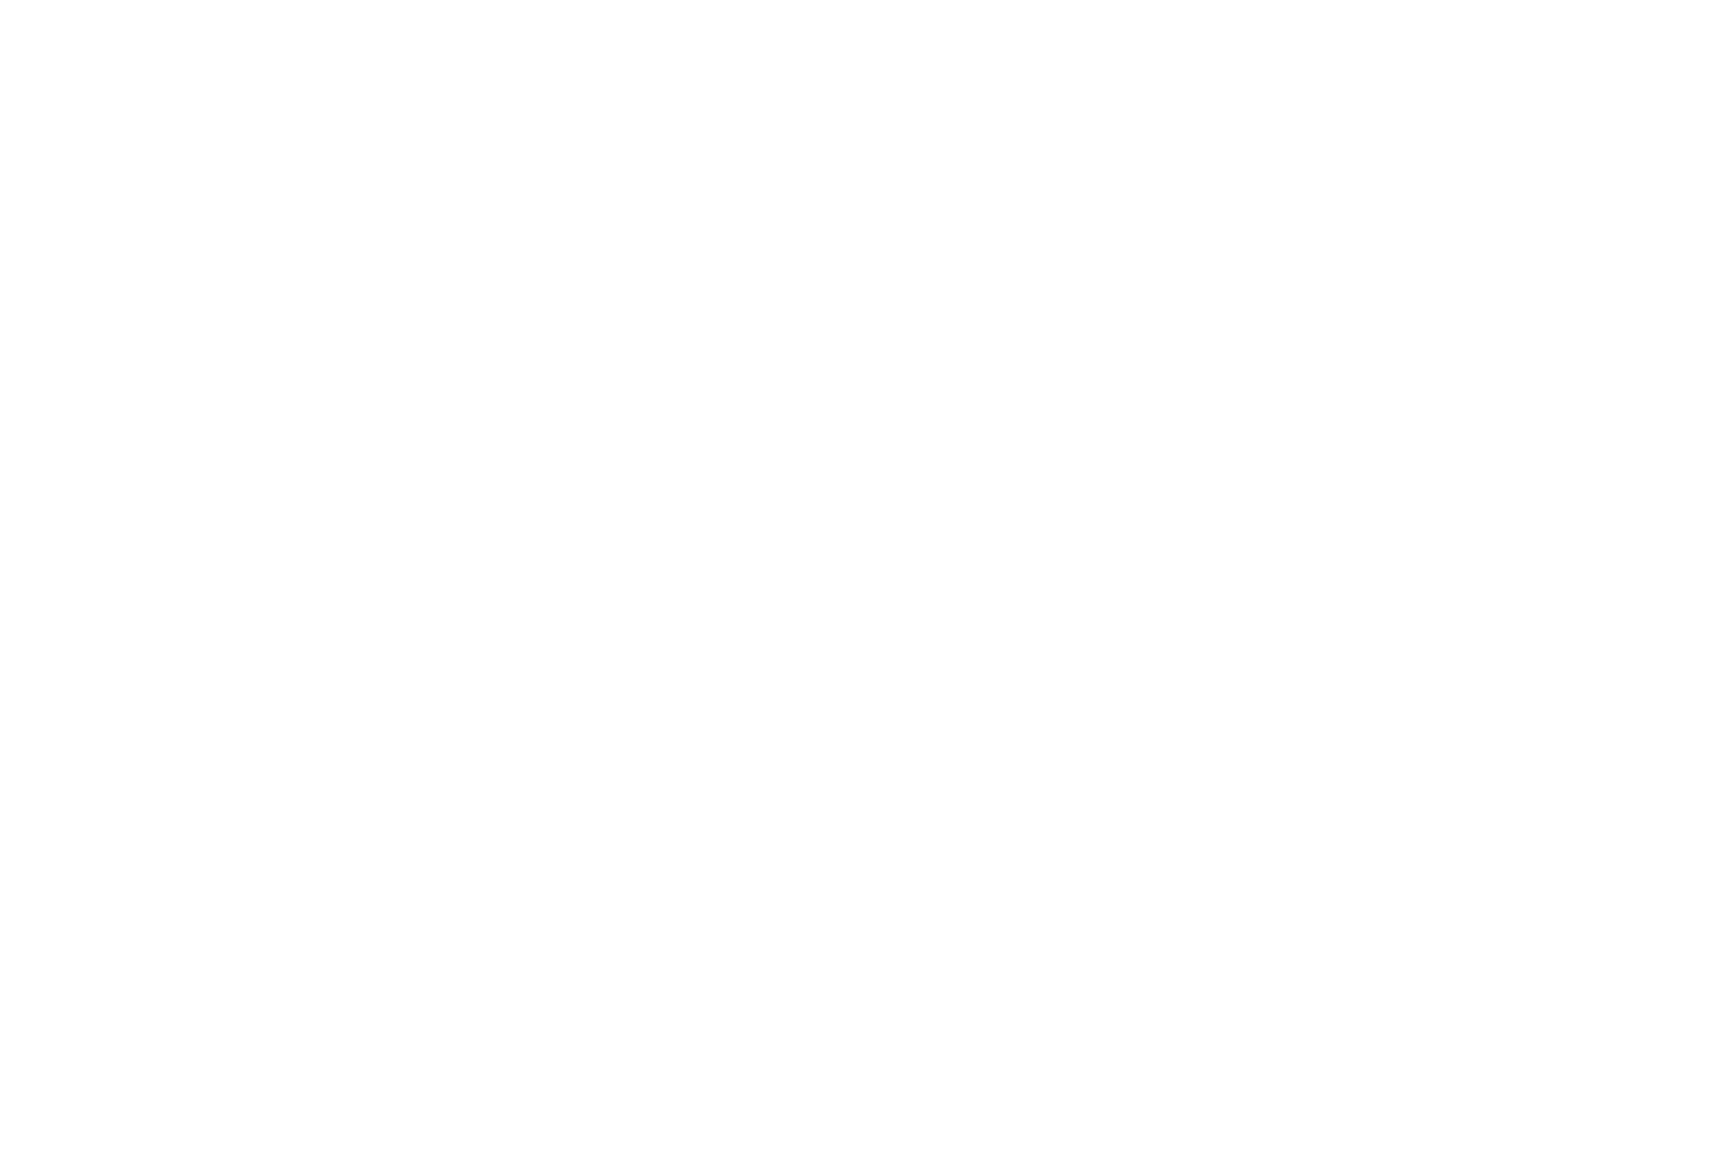 OFFICIAL SELECTION - Tryon International Film Festival - TRYON19 - 2019.png